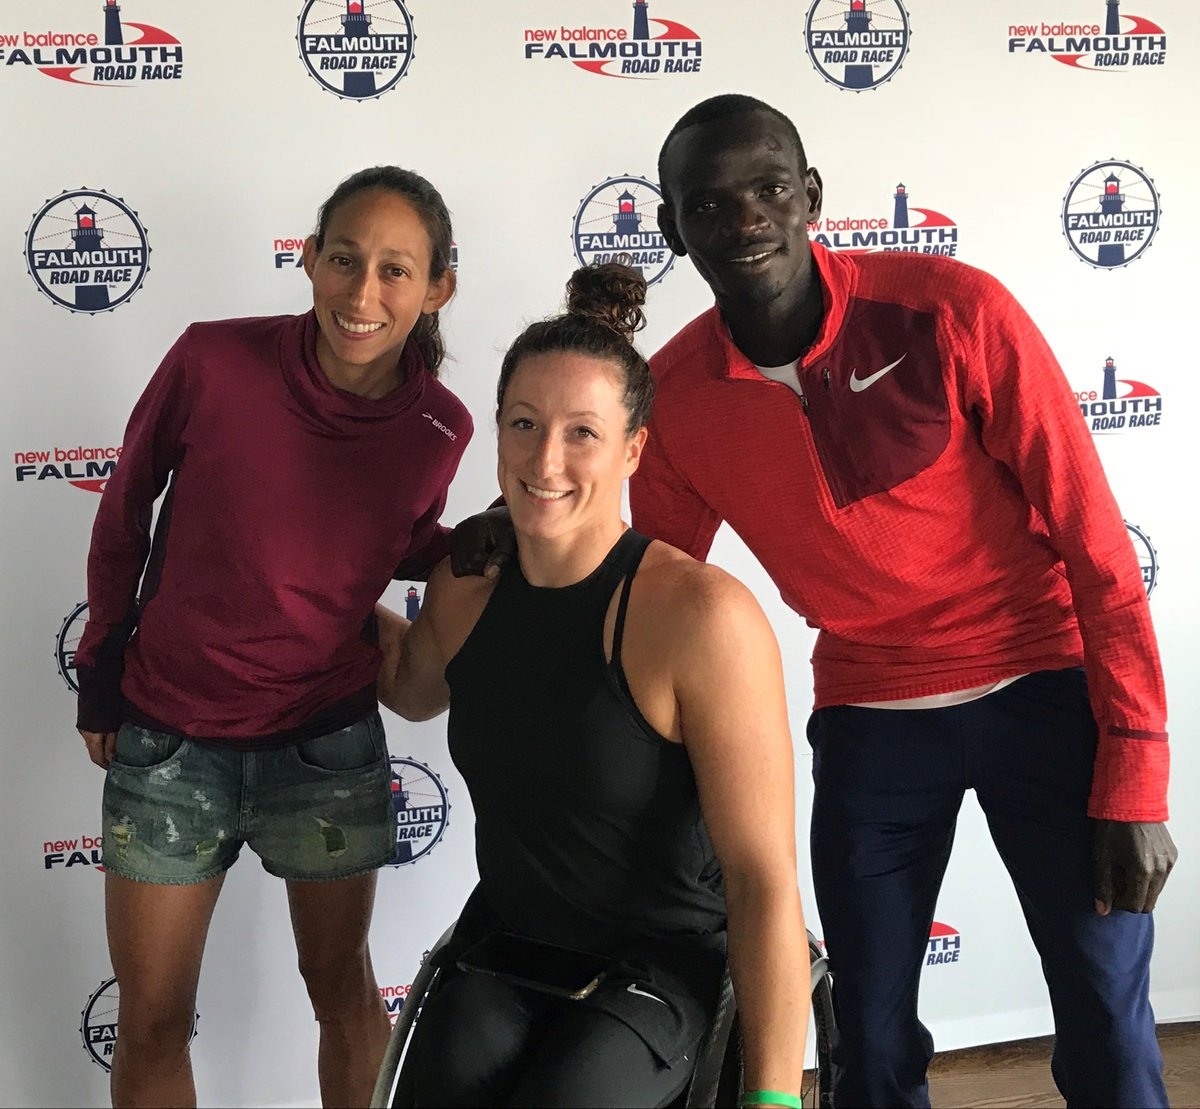 It&#39;s an invasion of champions! @des_linden @TatyanaMcFadden @Sksambu at #falmouthroadrace. 2018 #BostonMarathon winner here for 1st time; Official Starter for women&#39;s race then will jump in the pack. <br>http://pic.twitter.com/0m8TB7MoVz